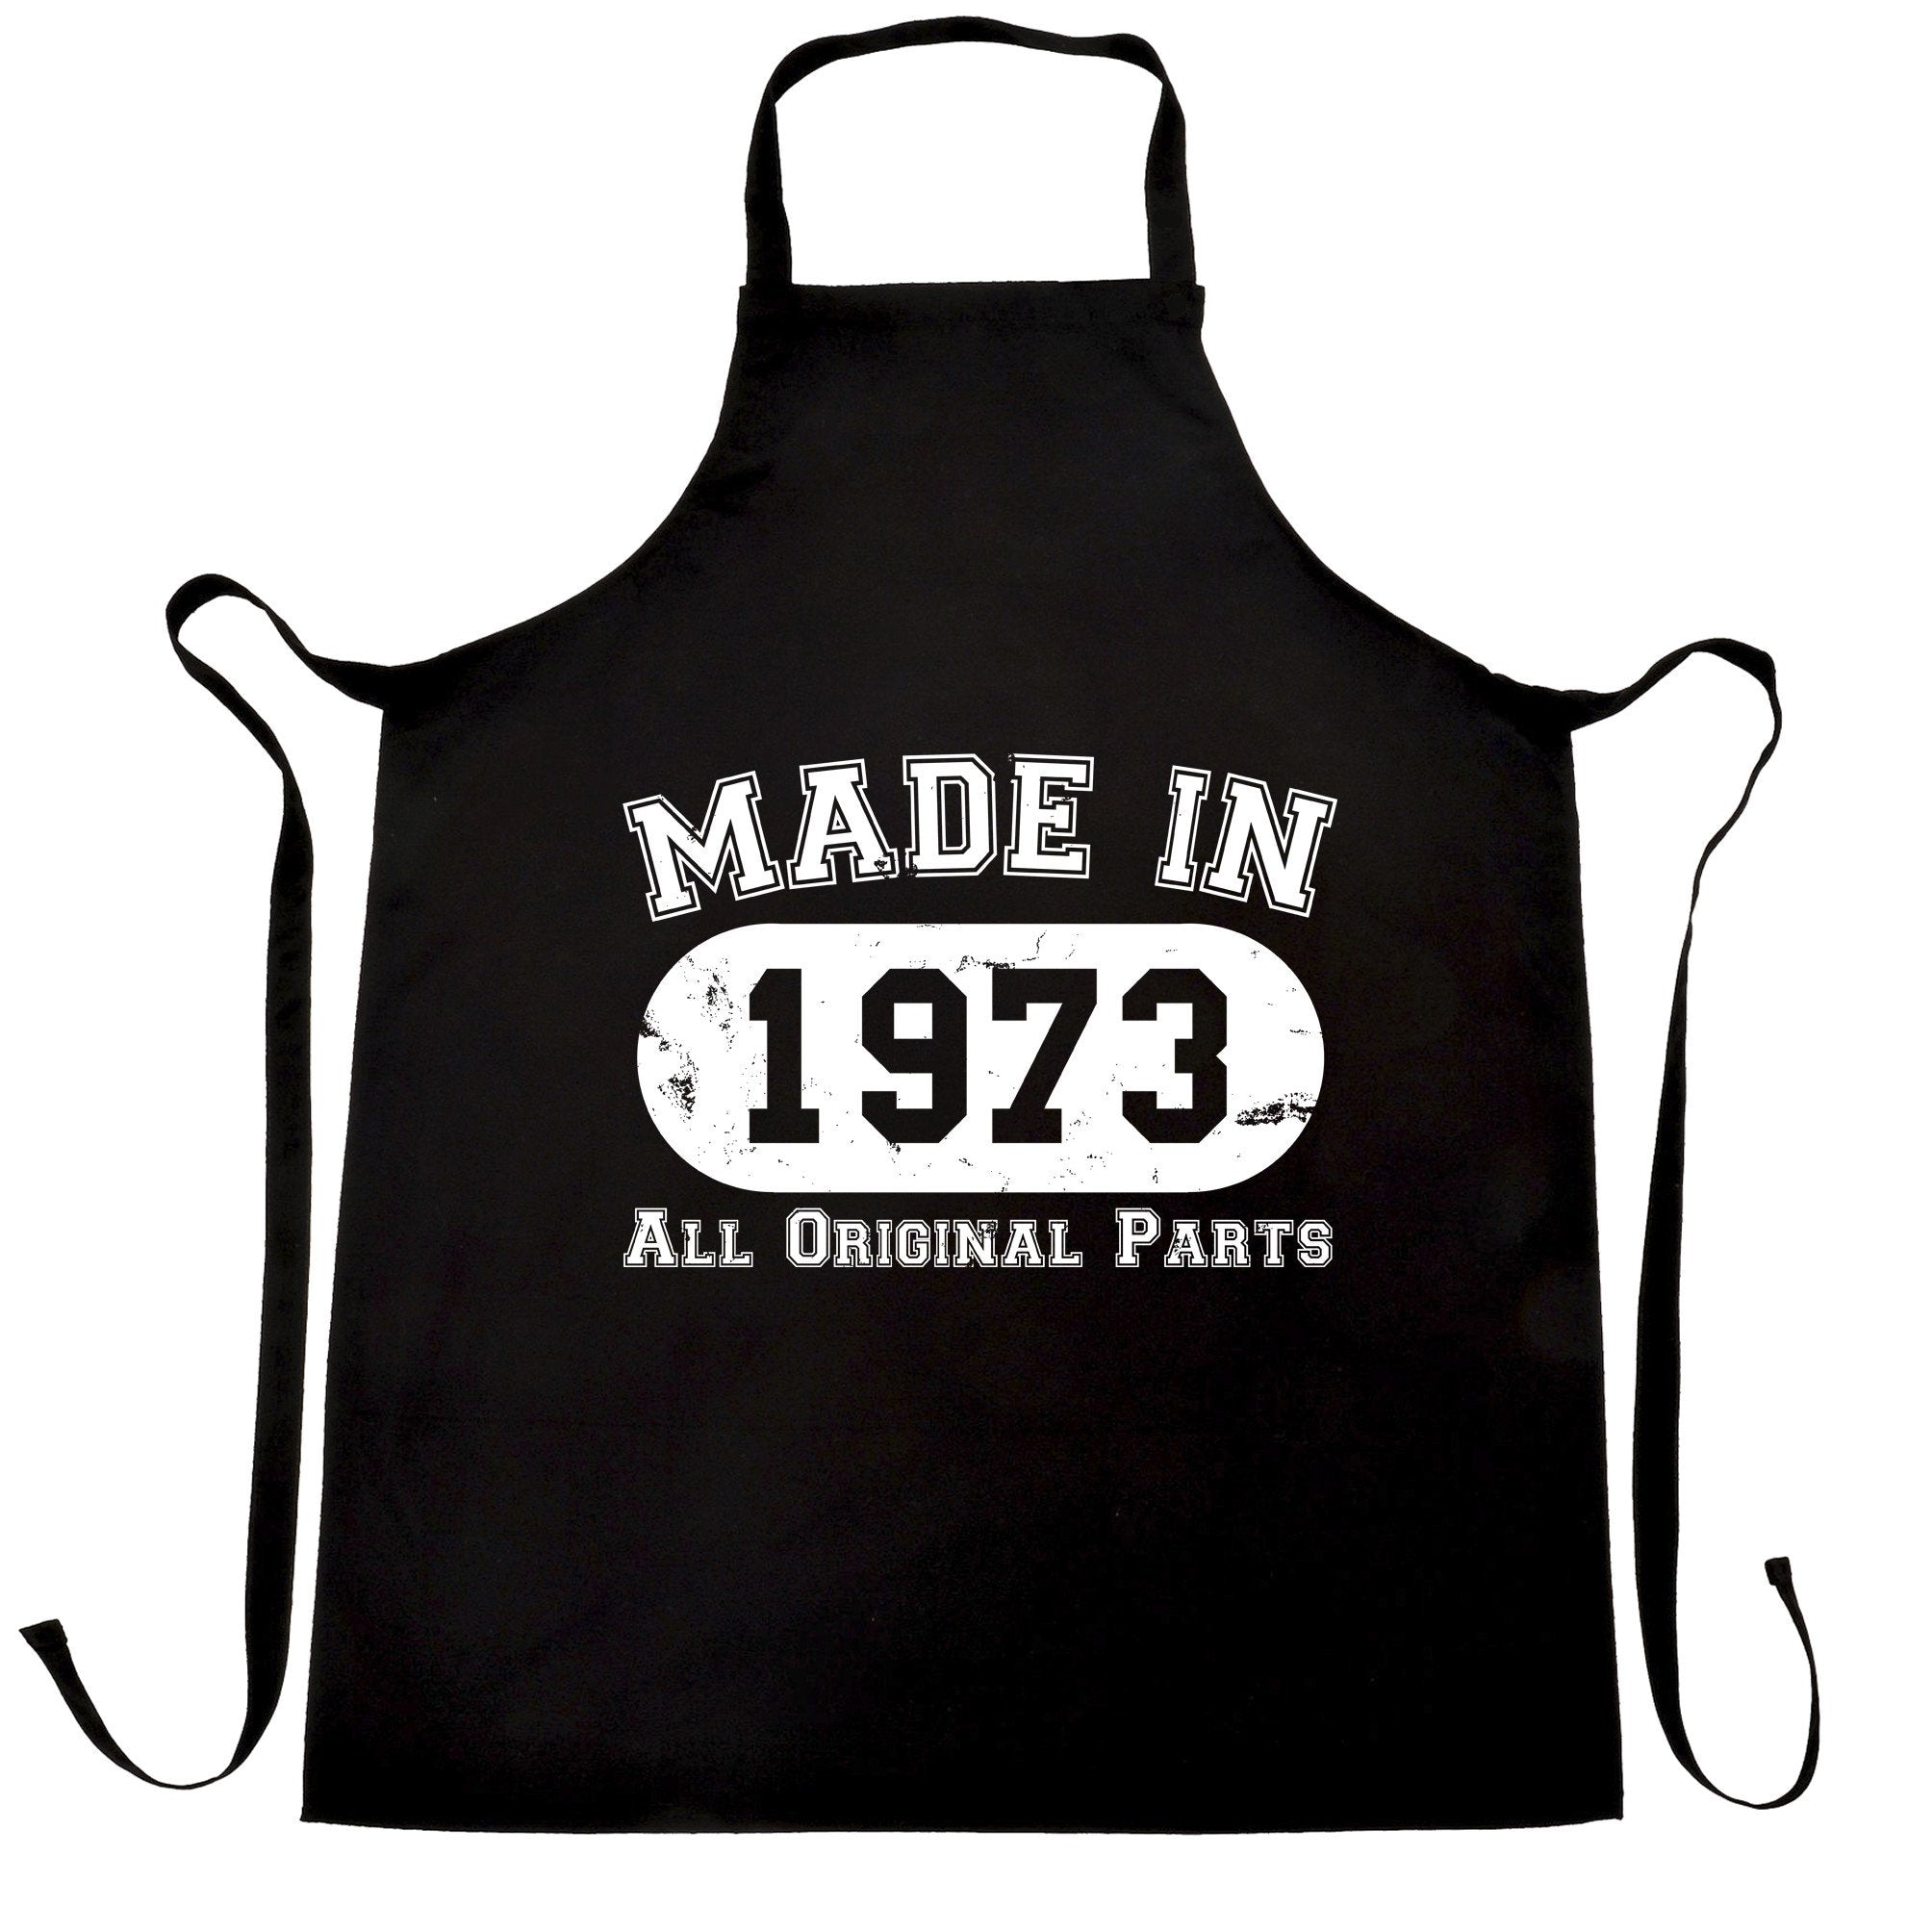 Made in 1973 All Original Parts Apron [Distressed]